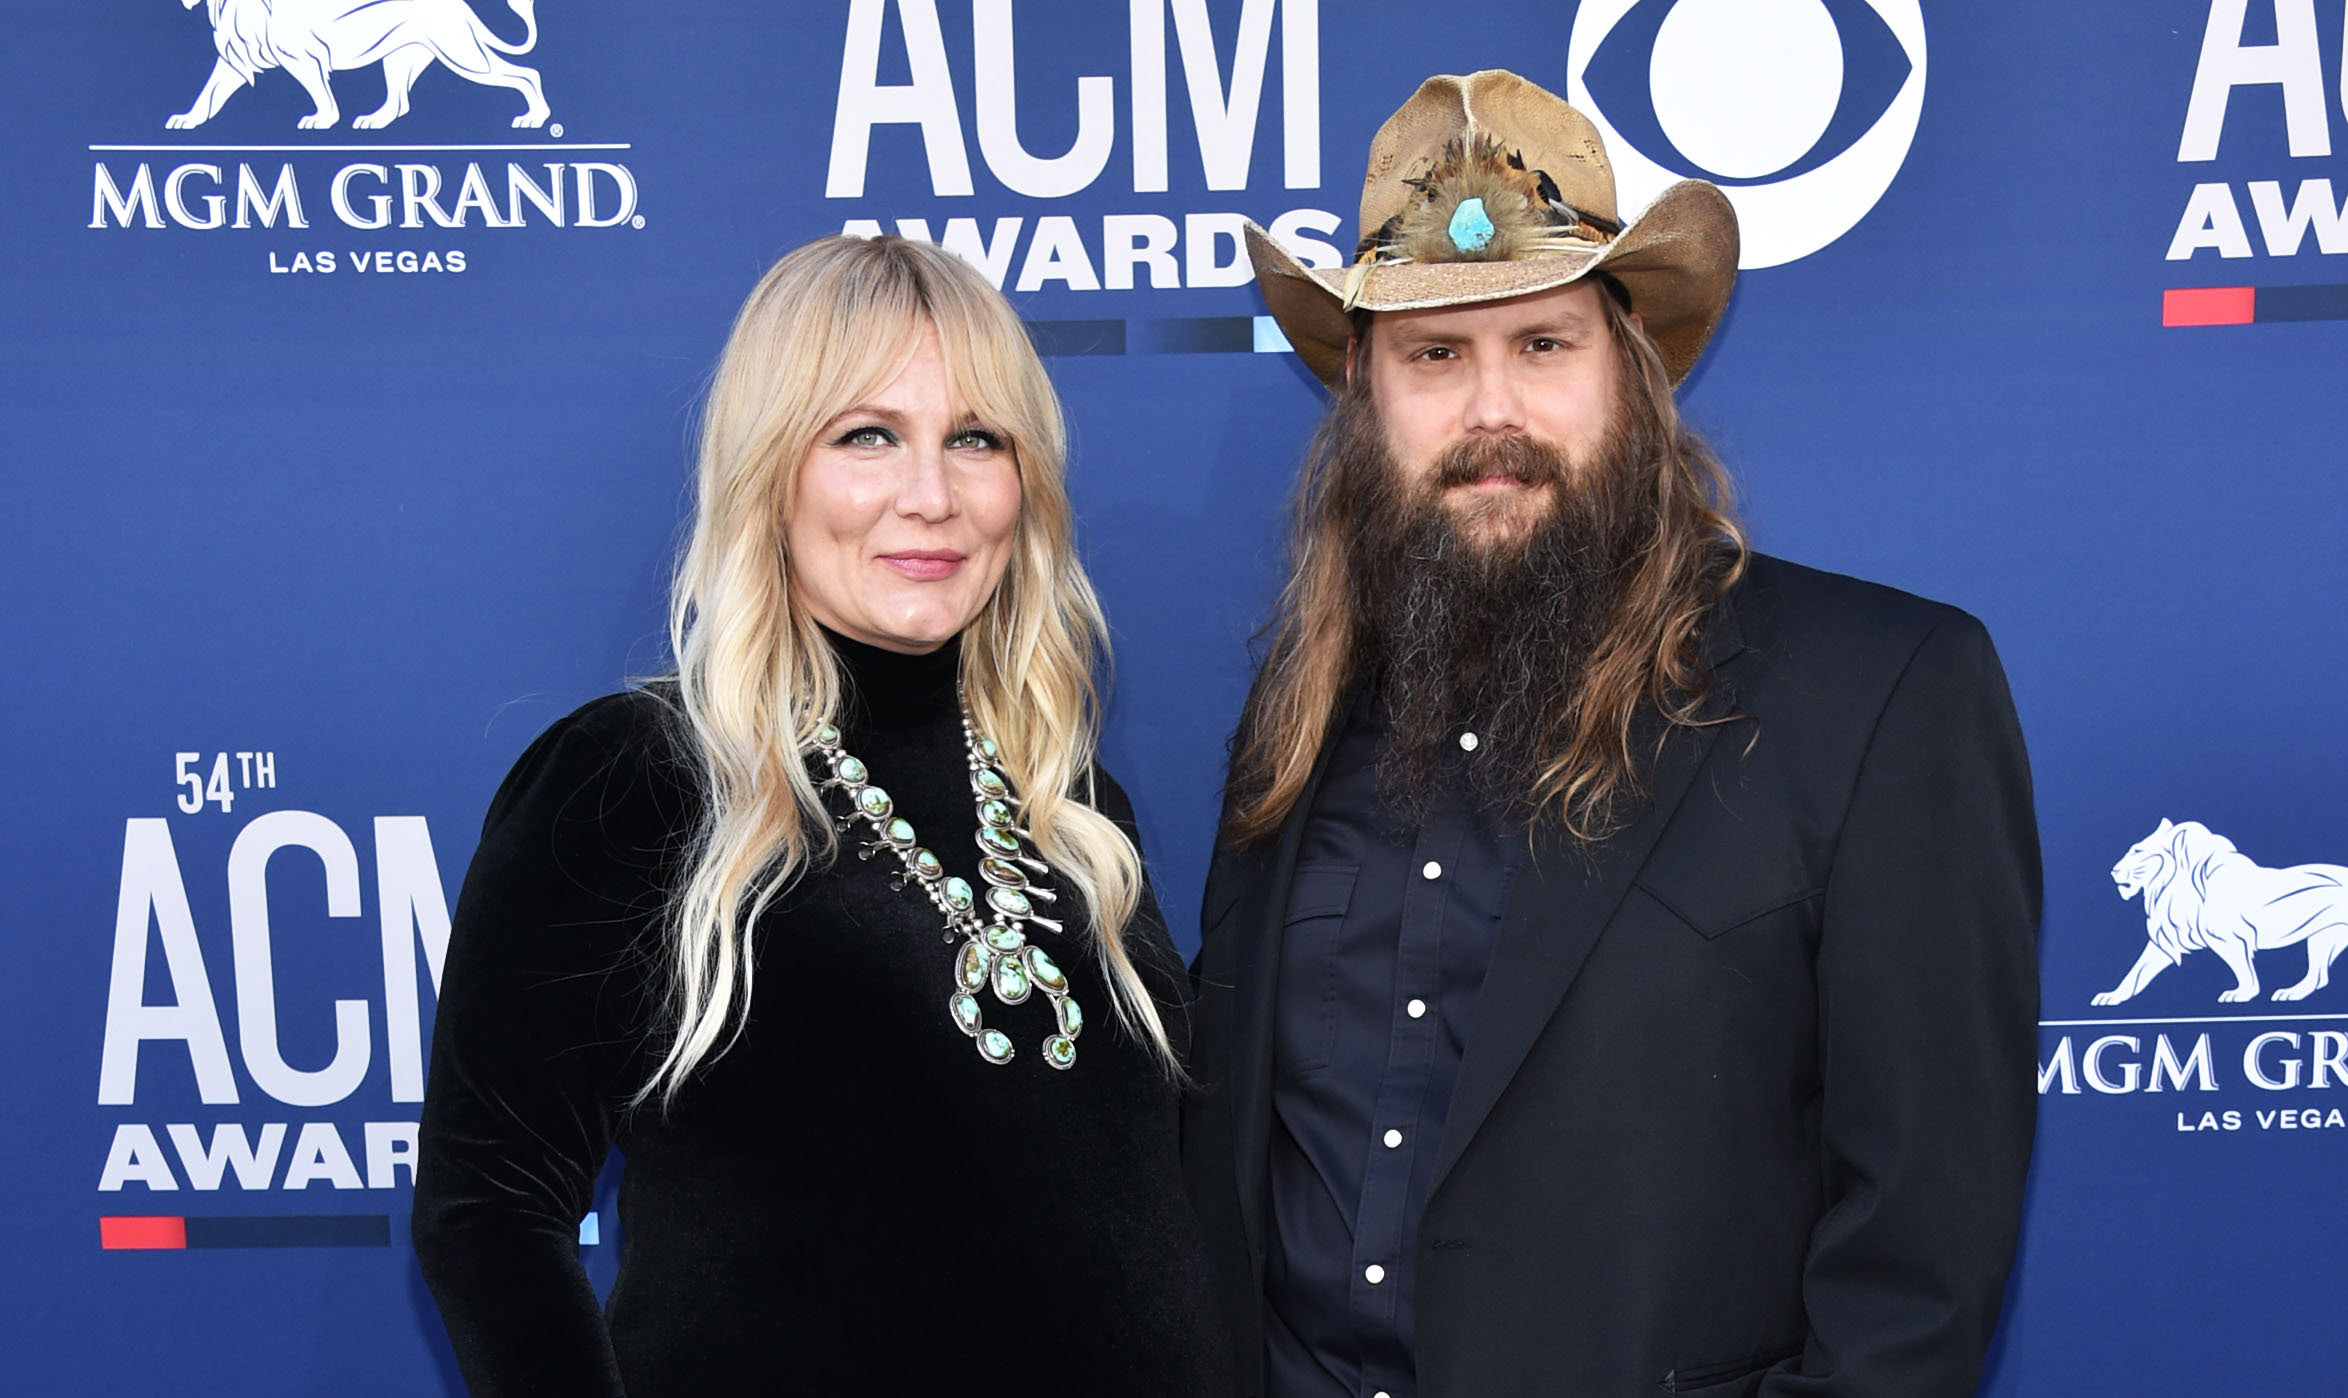 Chris Stapleton and Wife Morgane's 5 Kids are Their Heart and Soul! Meet Their Children